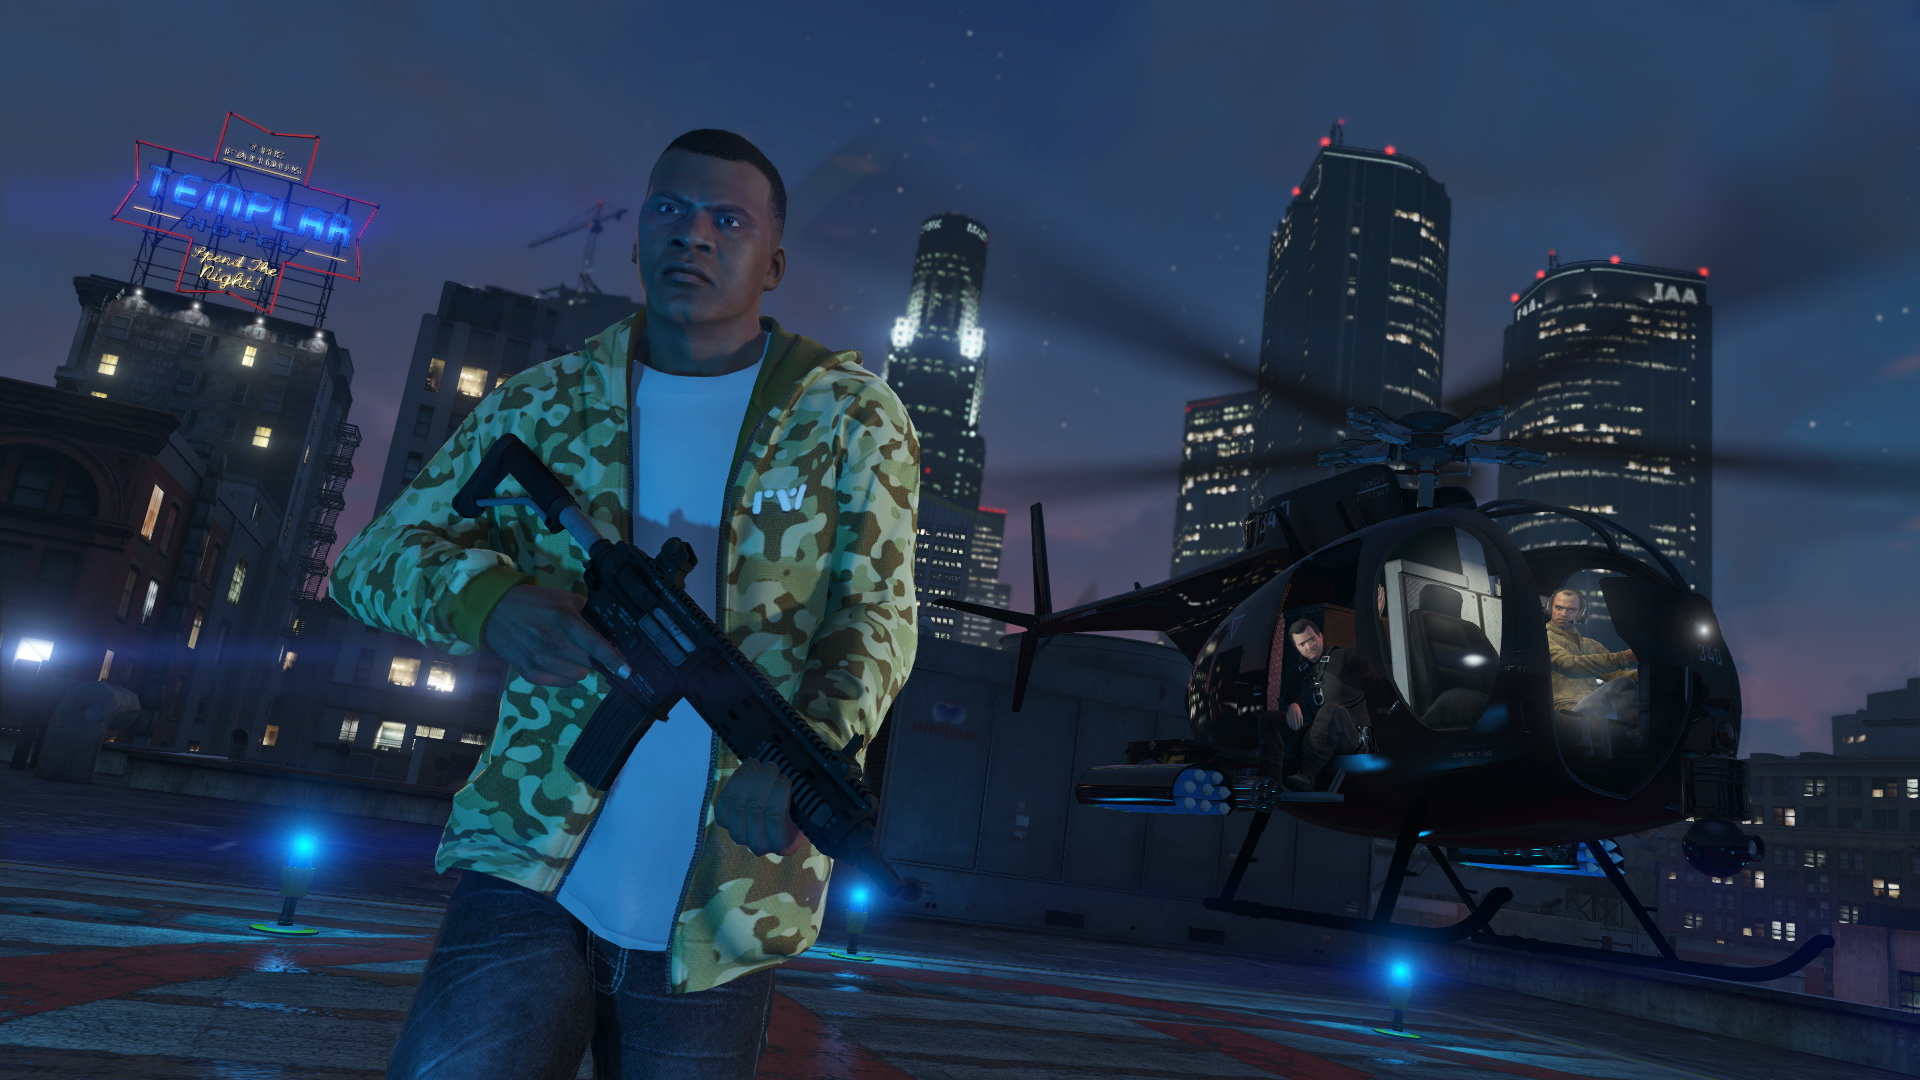 GTA V release date for PS 4 confirmed along with new visuals for PS4